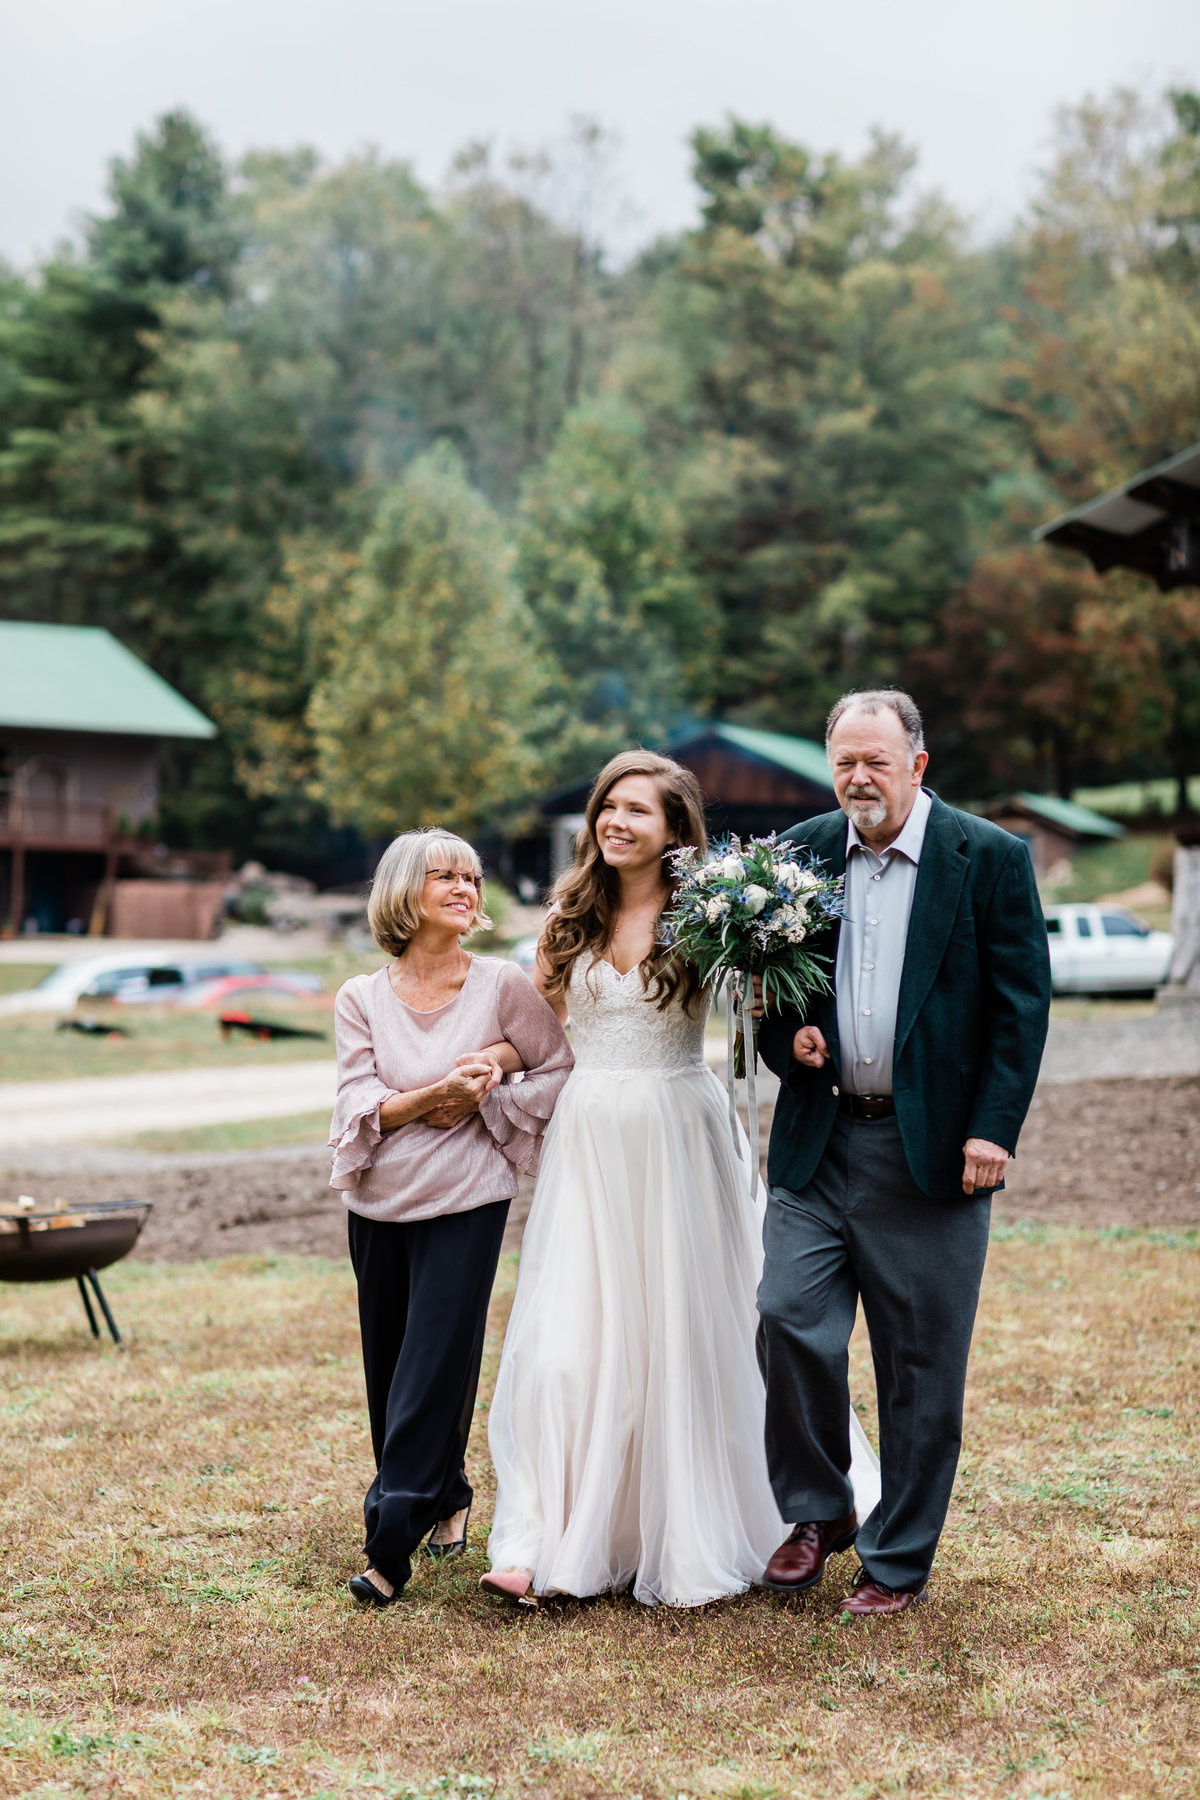 Danielle-Defayette-Photography-Mountain-Laurel-Farm-Wedding-Virginia-229